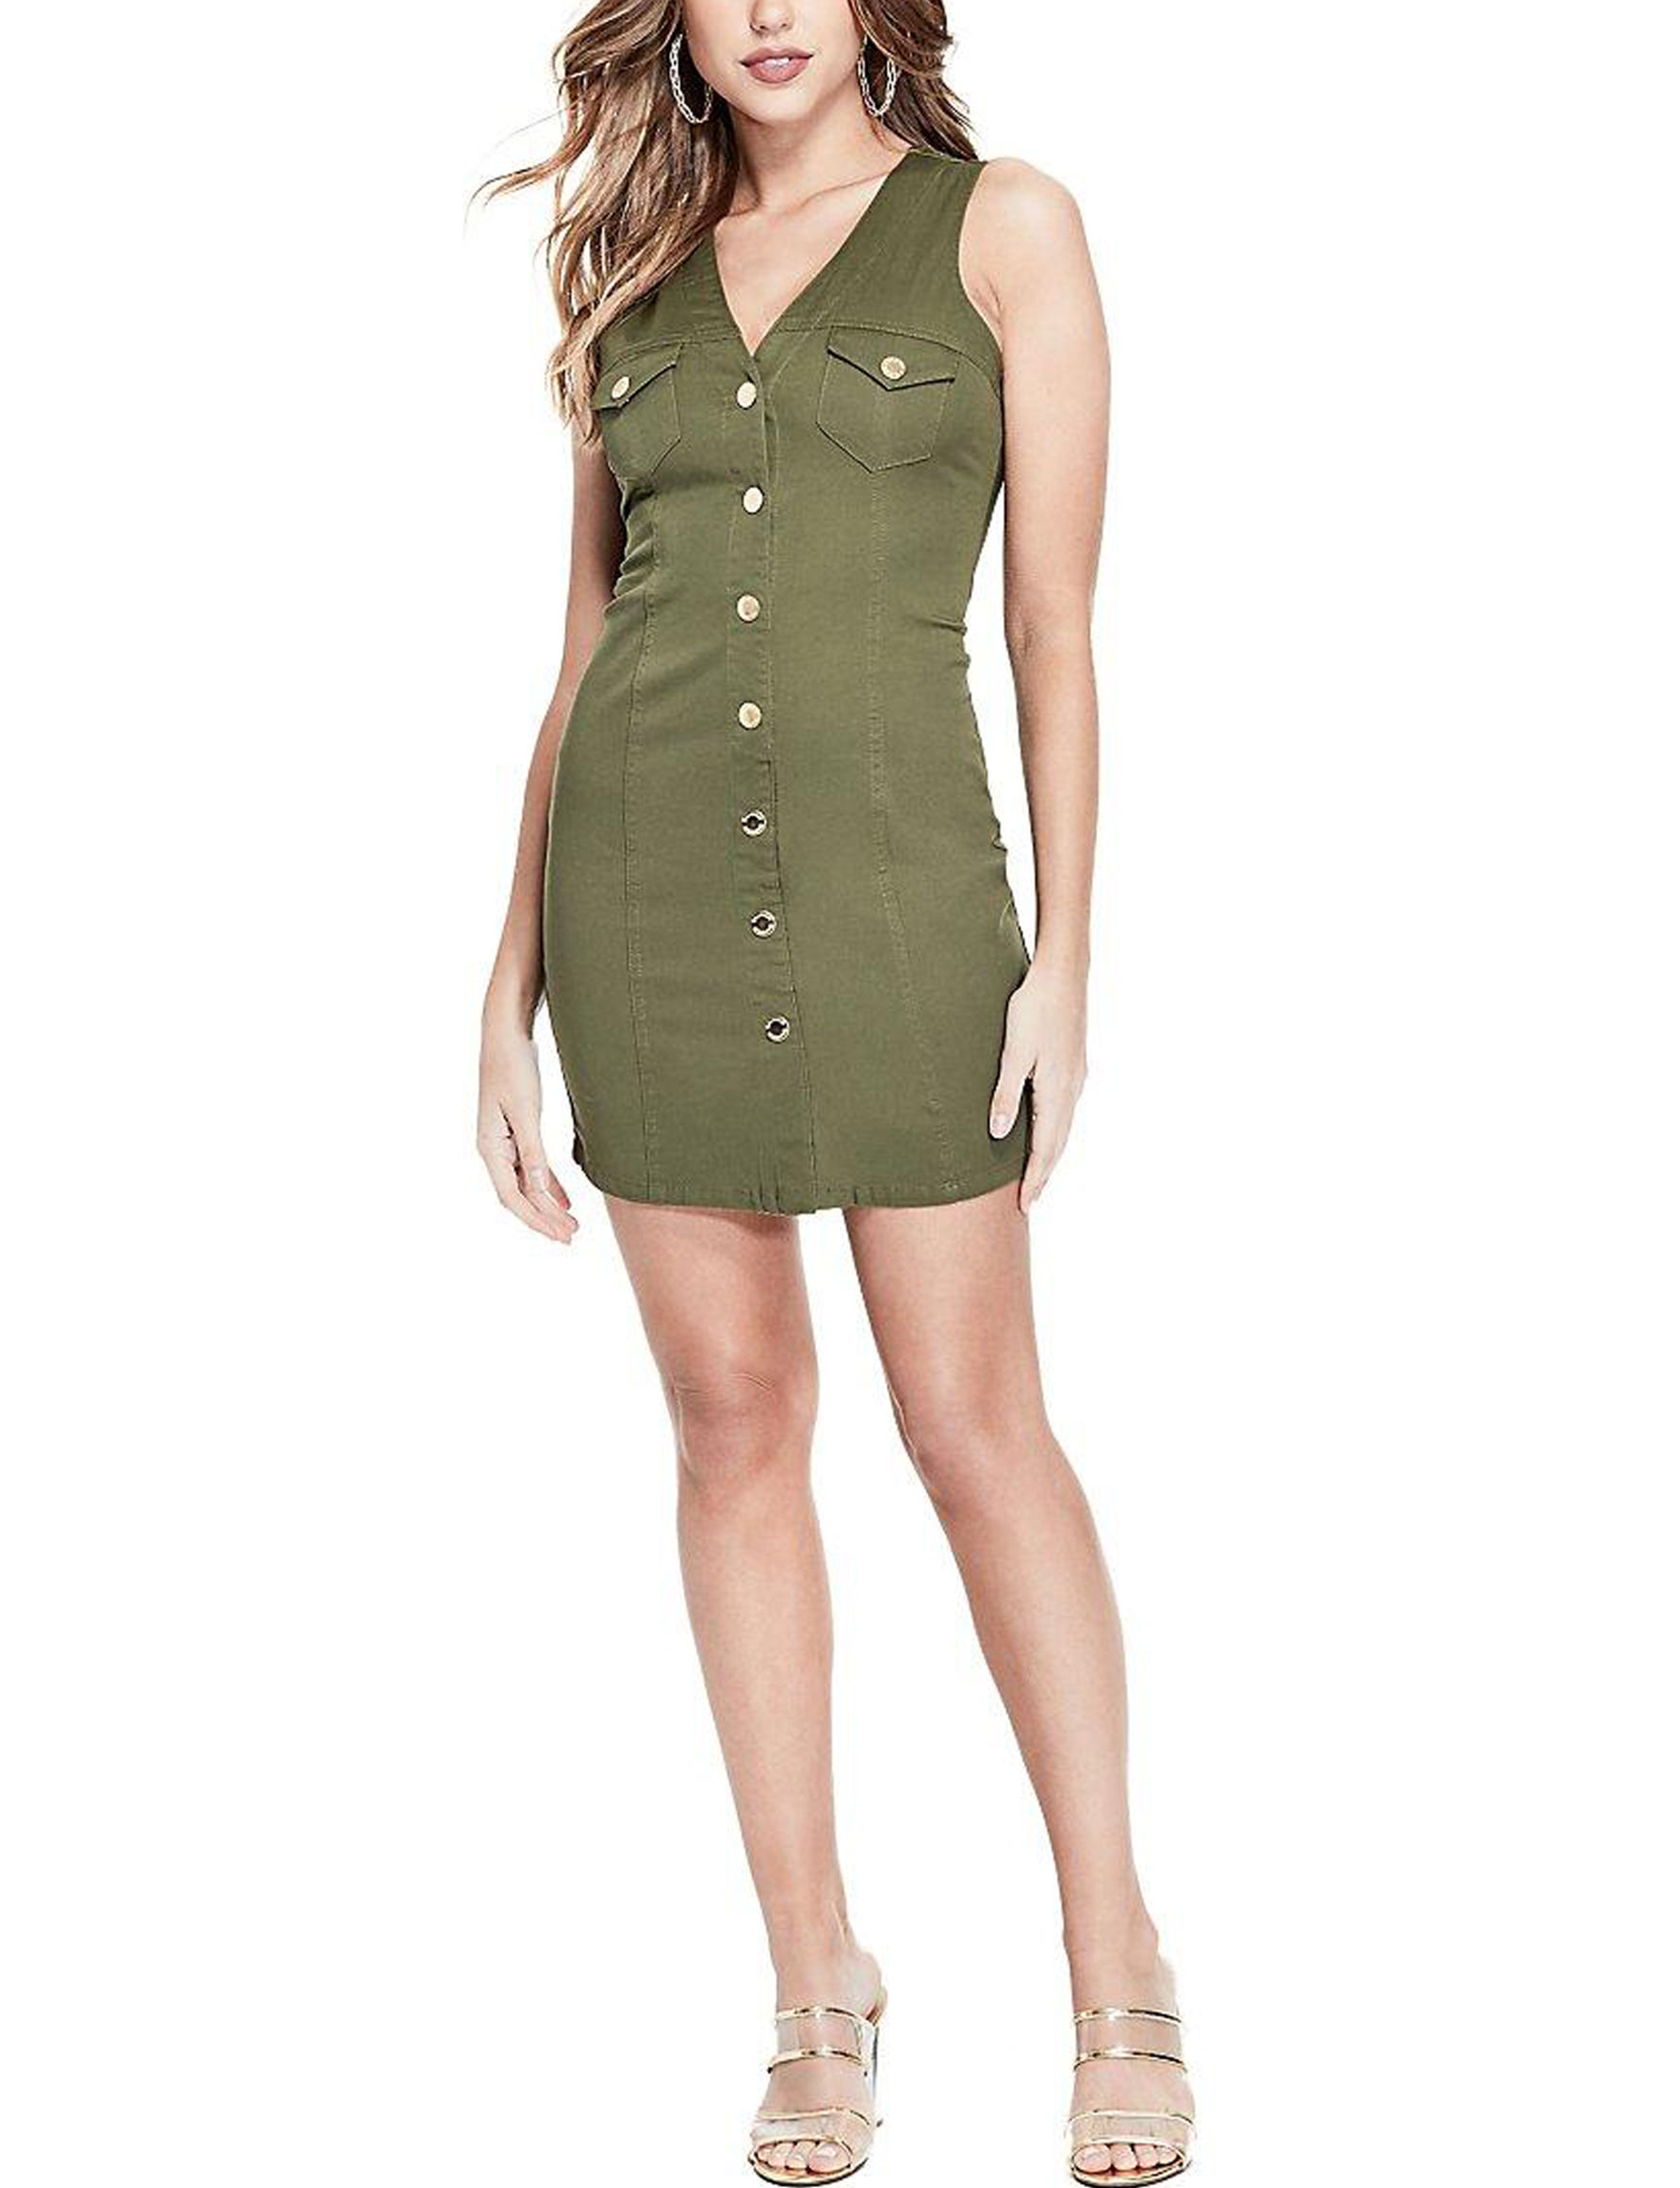 G by Guess Olive Everyday & Casual Shirt Dresses